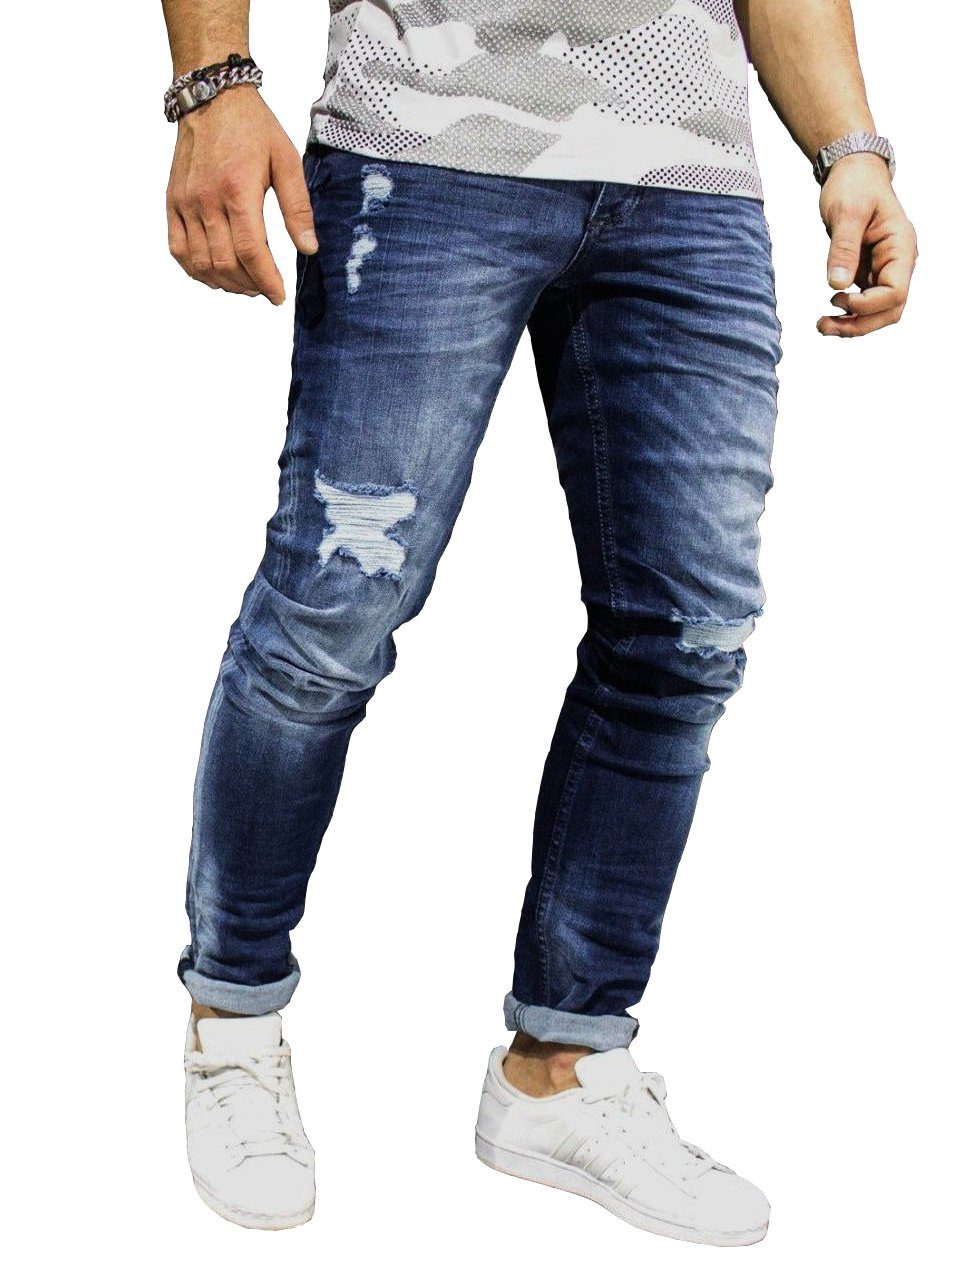 Men's Ripped Destroyed Jeans Slim Fit Distressed Denim Pants Trousers Blue003 32